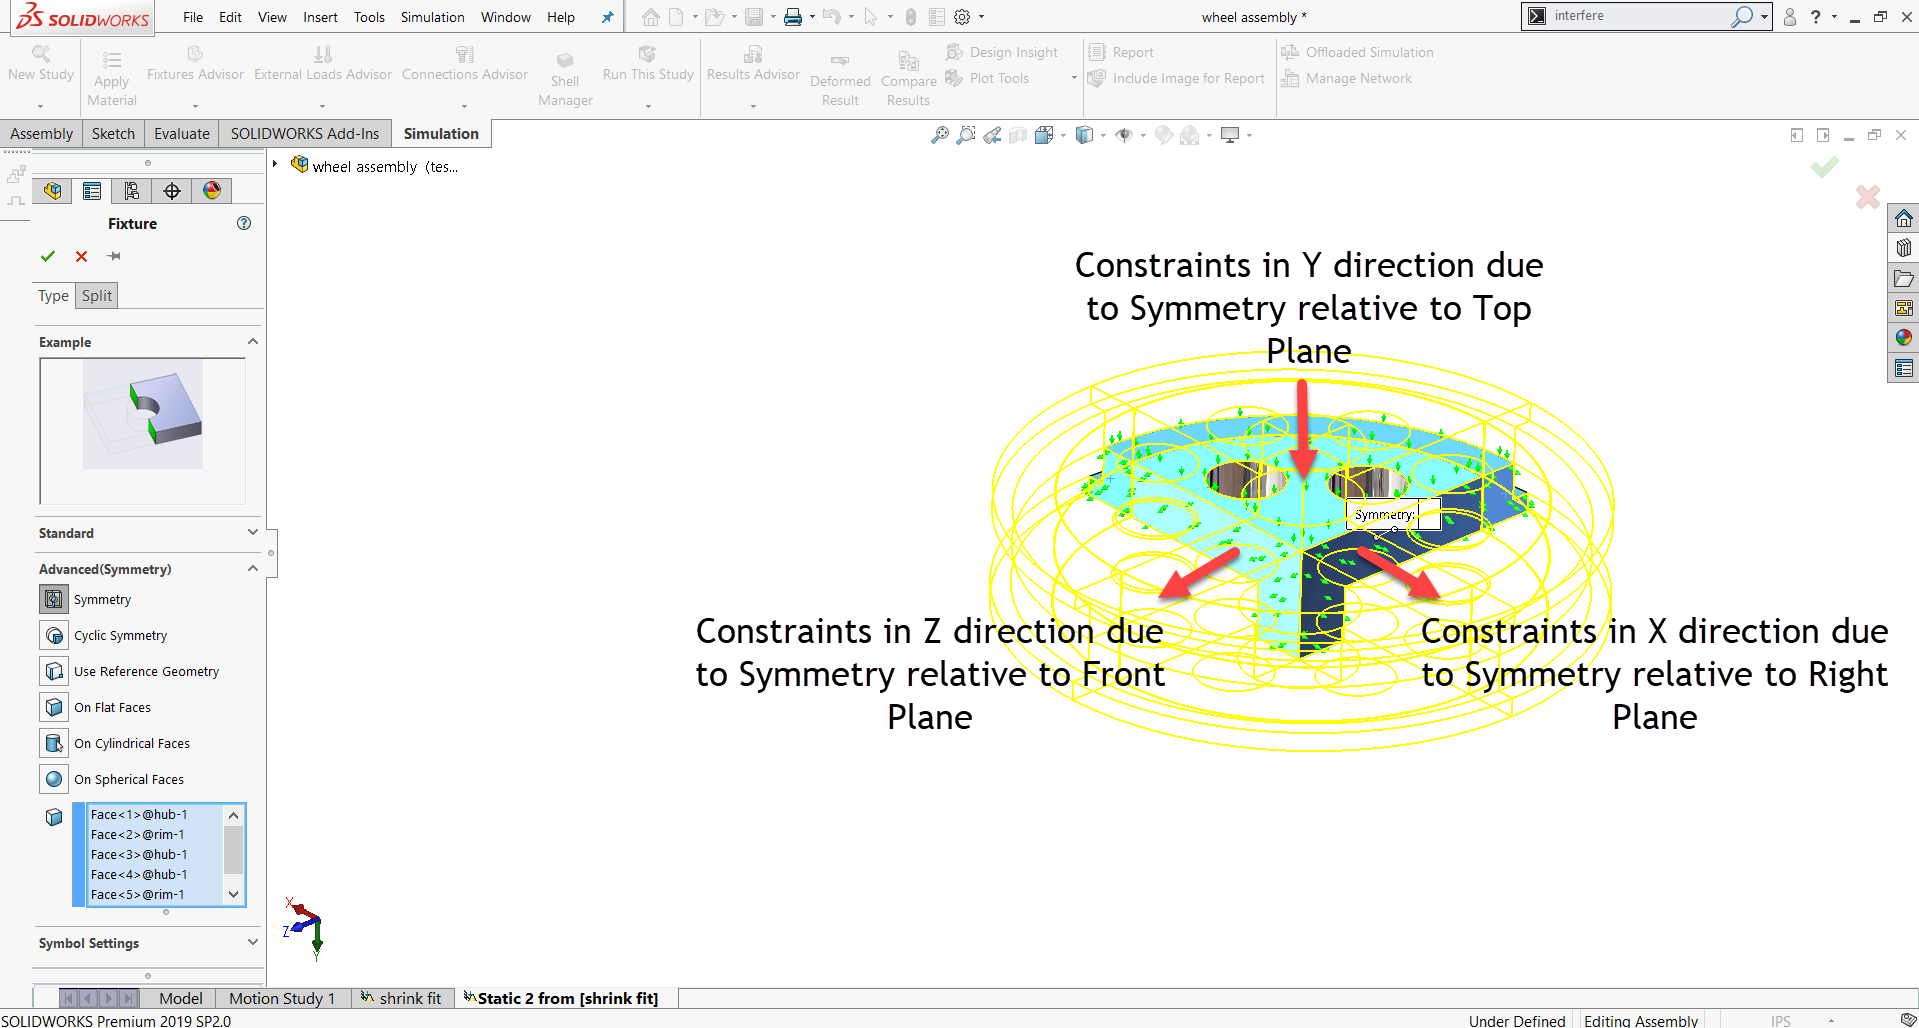 Applying the Symmetry Fixture Will Also Constrain the Models Normal to the Planes of Symmetry